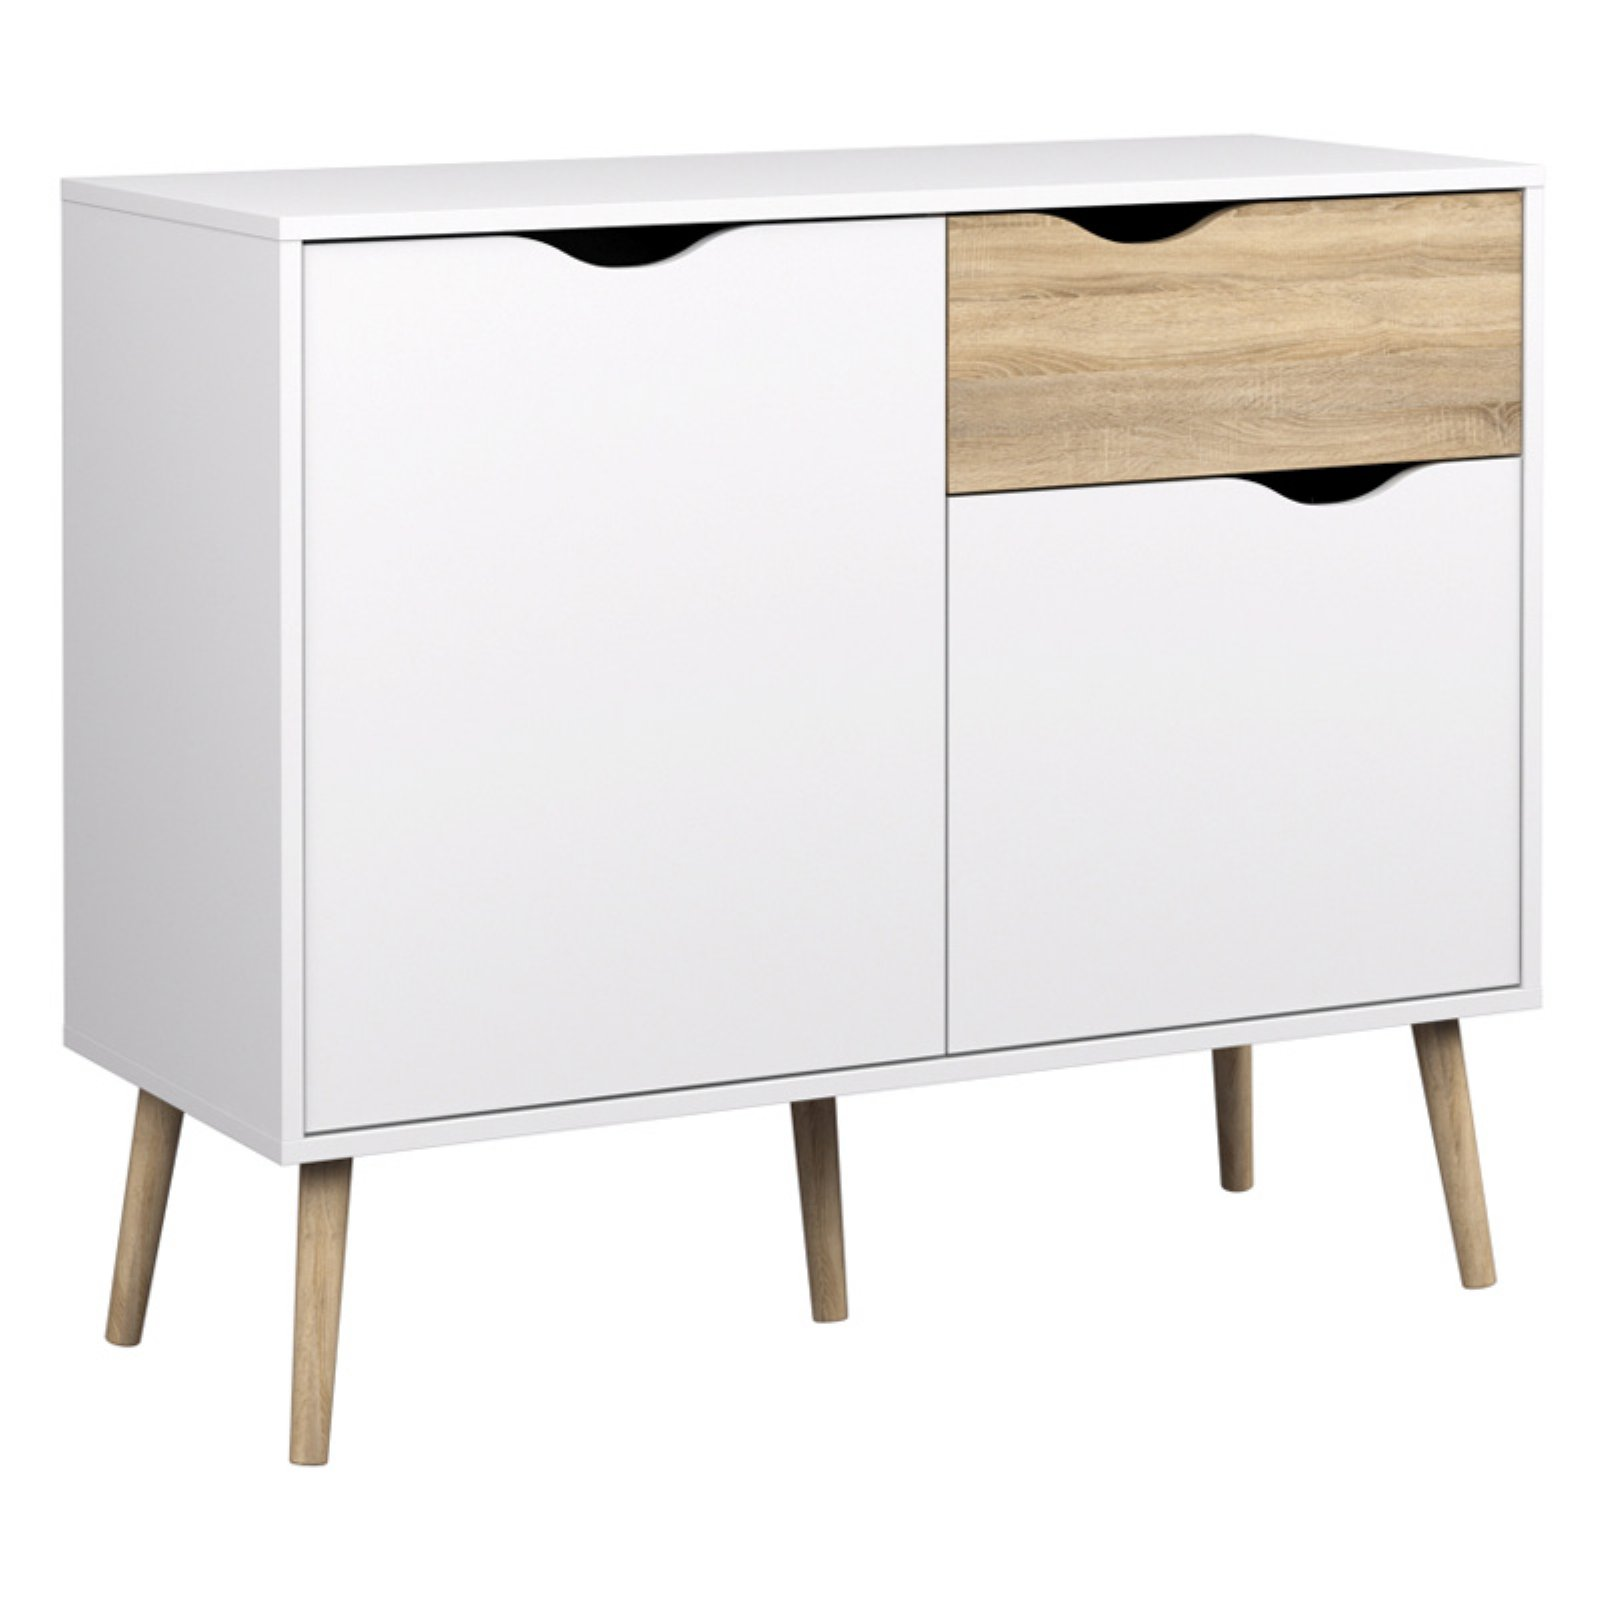 Tvilum Delta Diana Sideboard with 2 Doors and 1 Drawer by Generic